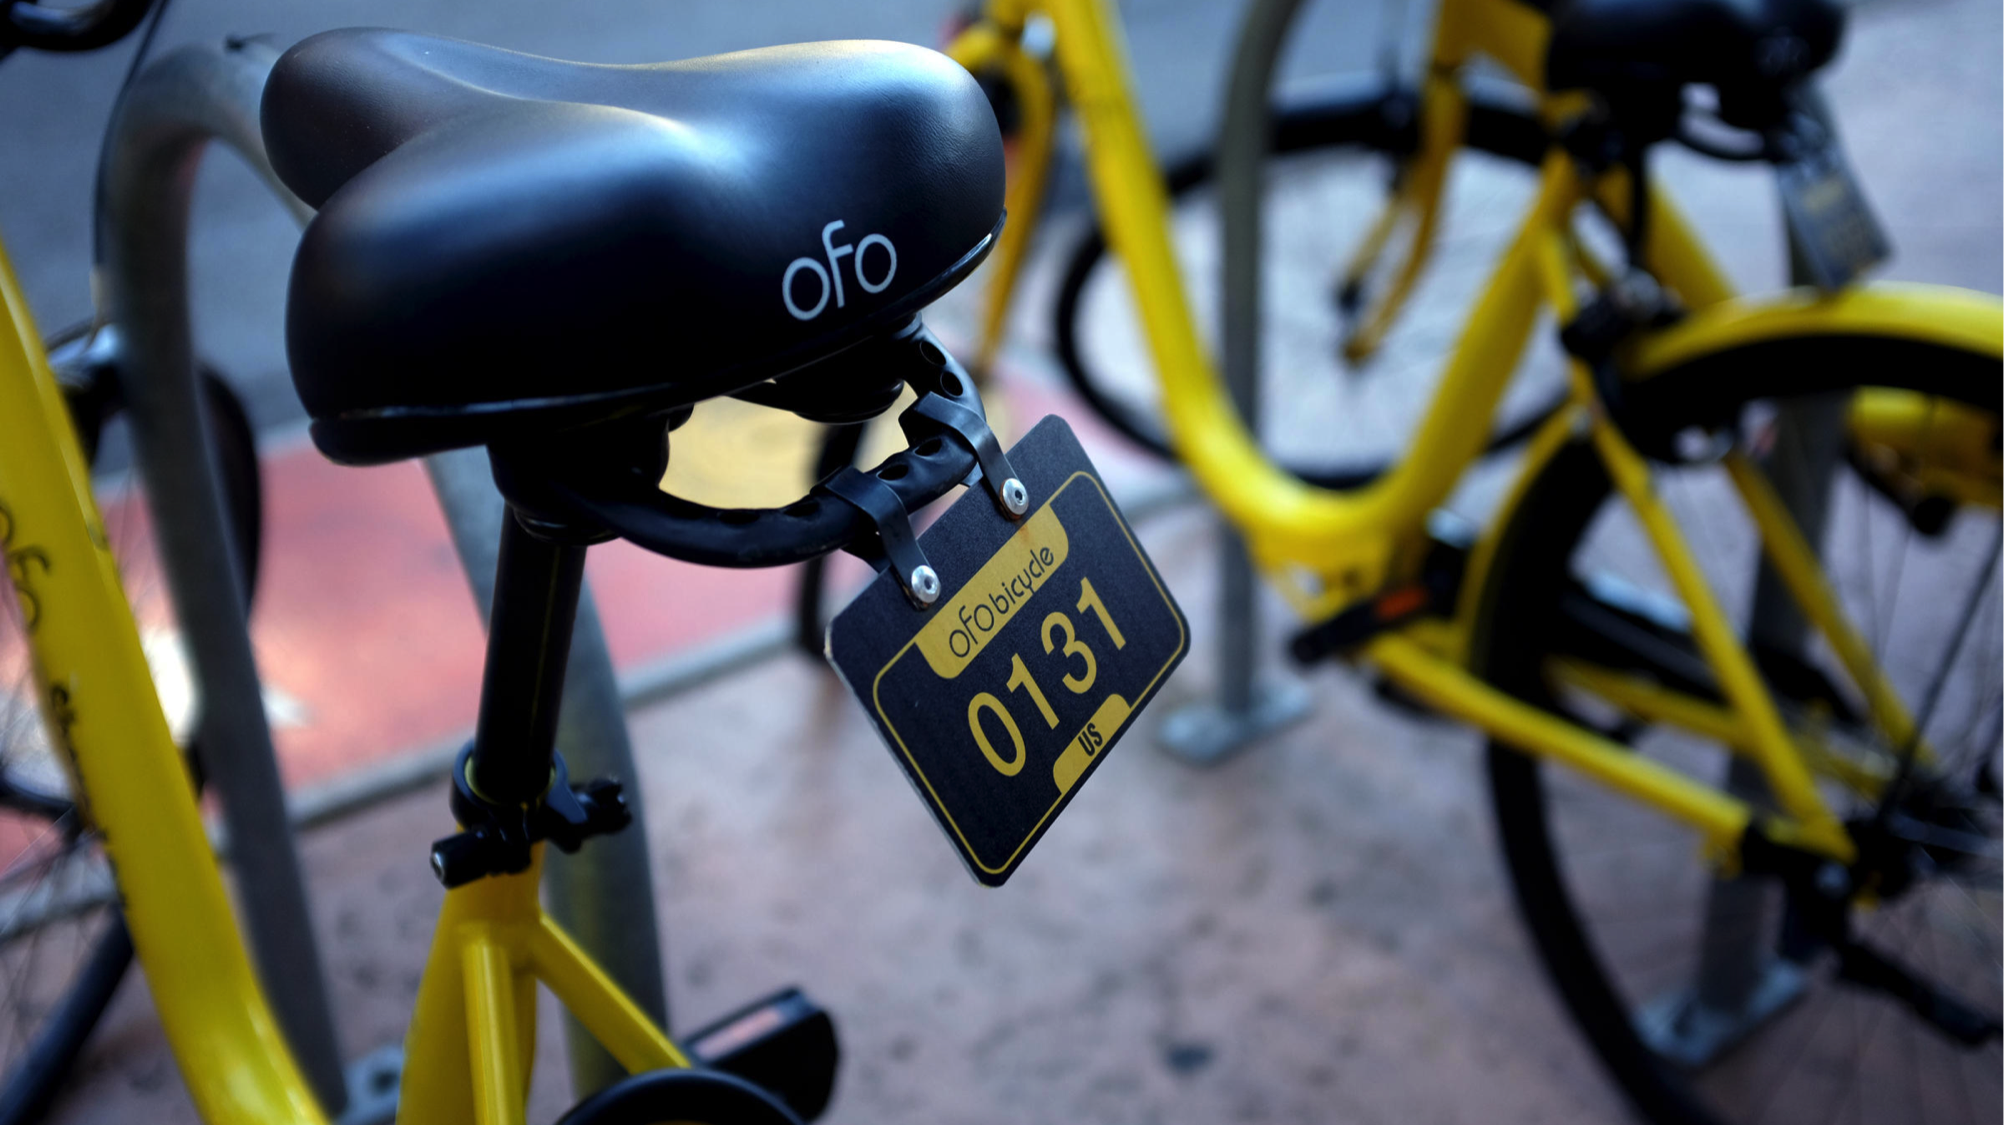 Watch How to Unlock an Ofo Bike video